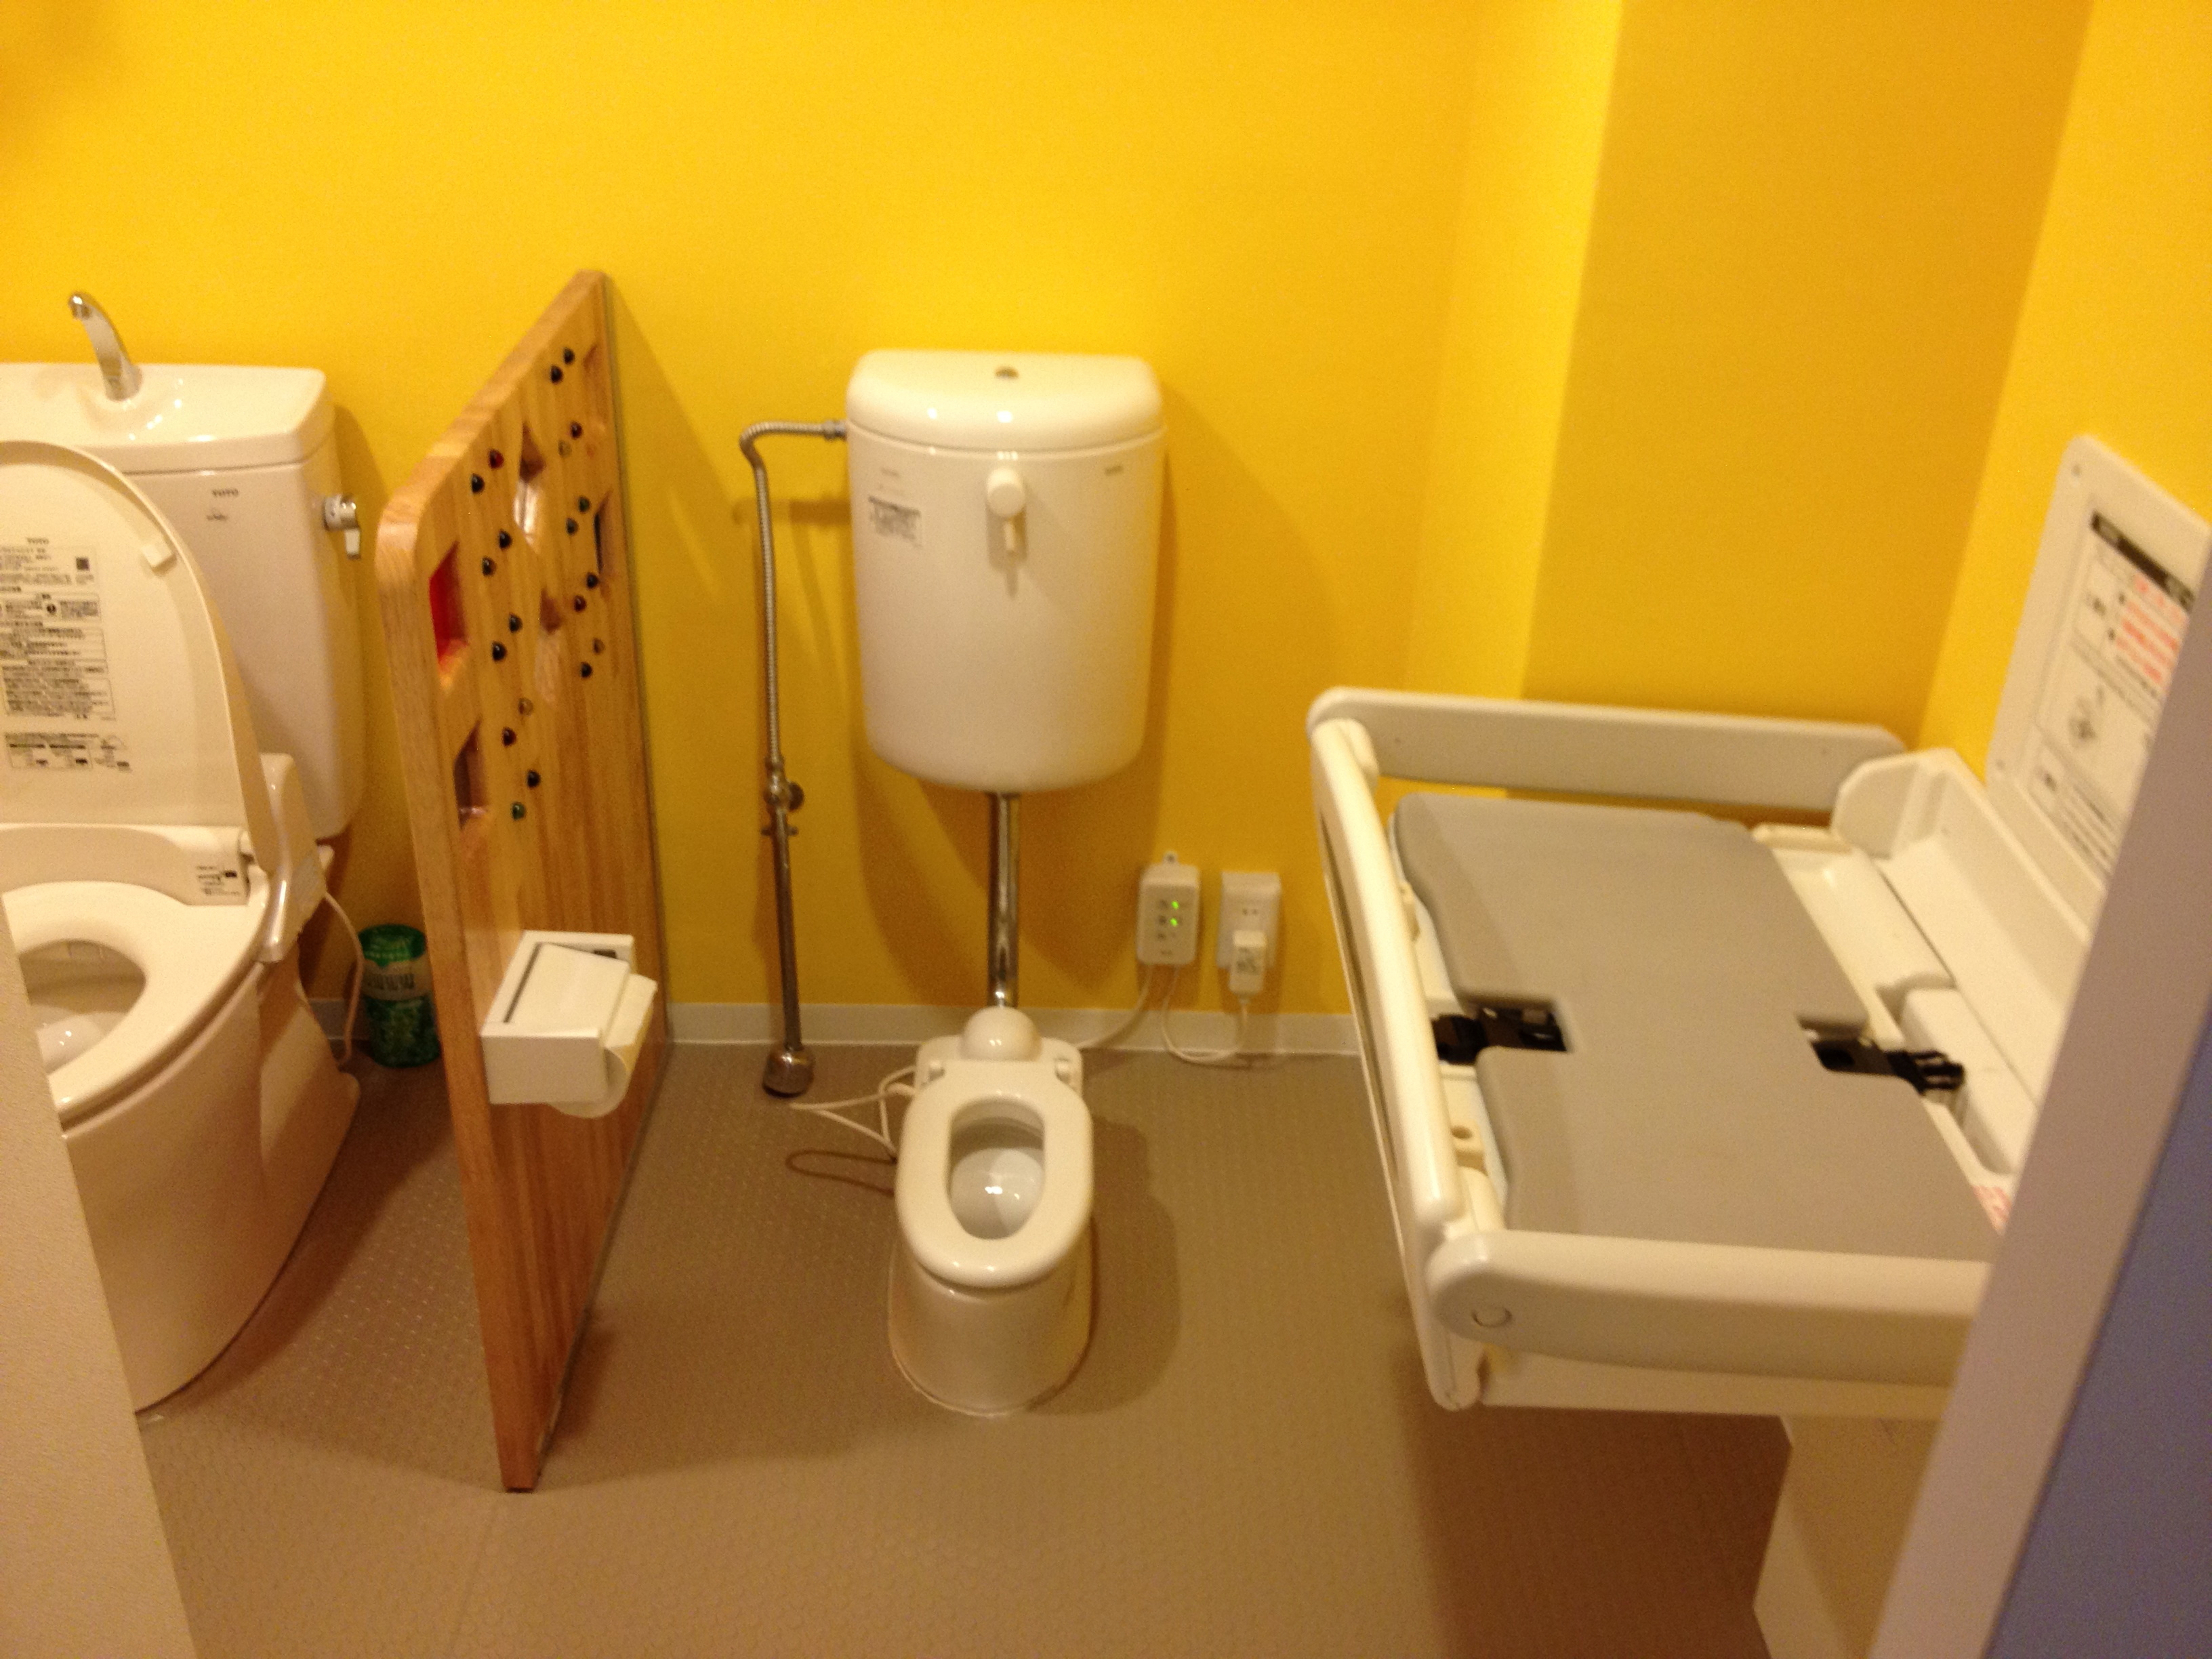 Baby Change Table Amp Toddler Toilet Tokyo Urban Baby